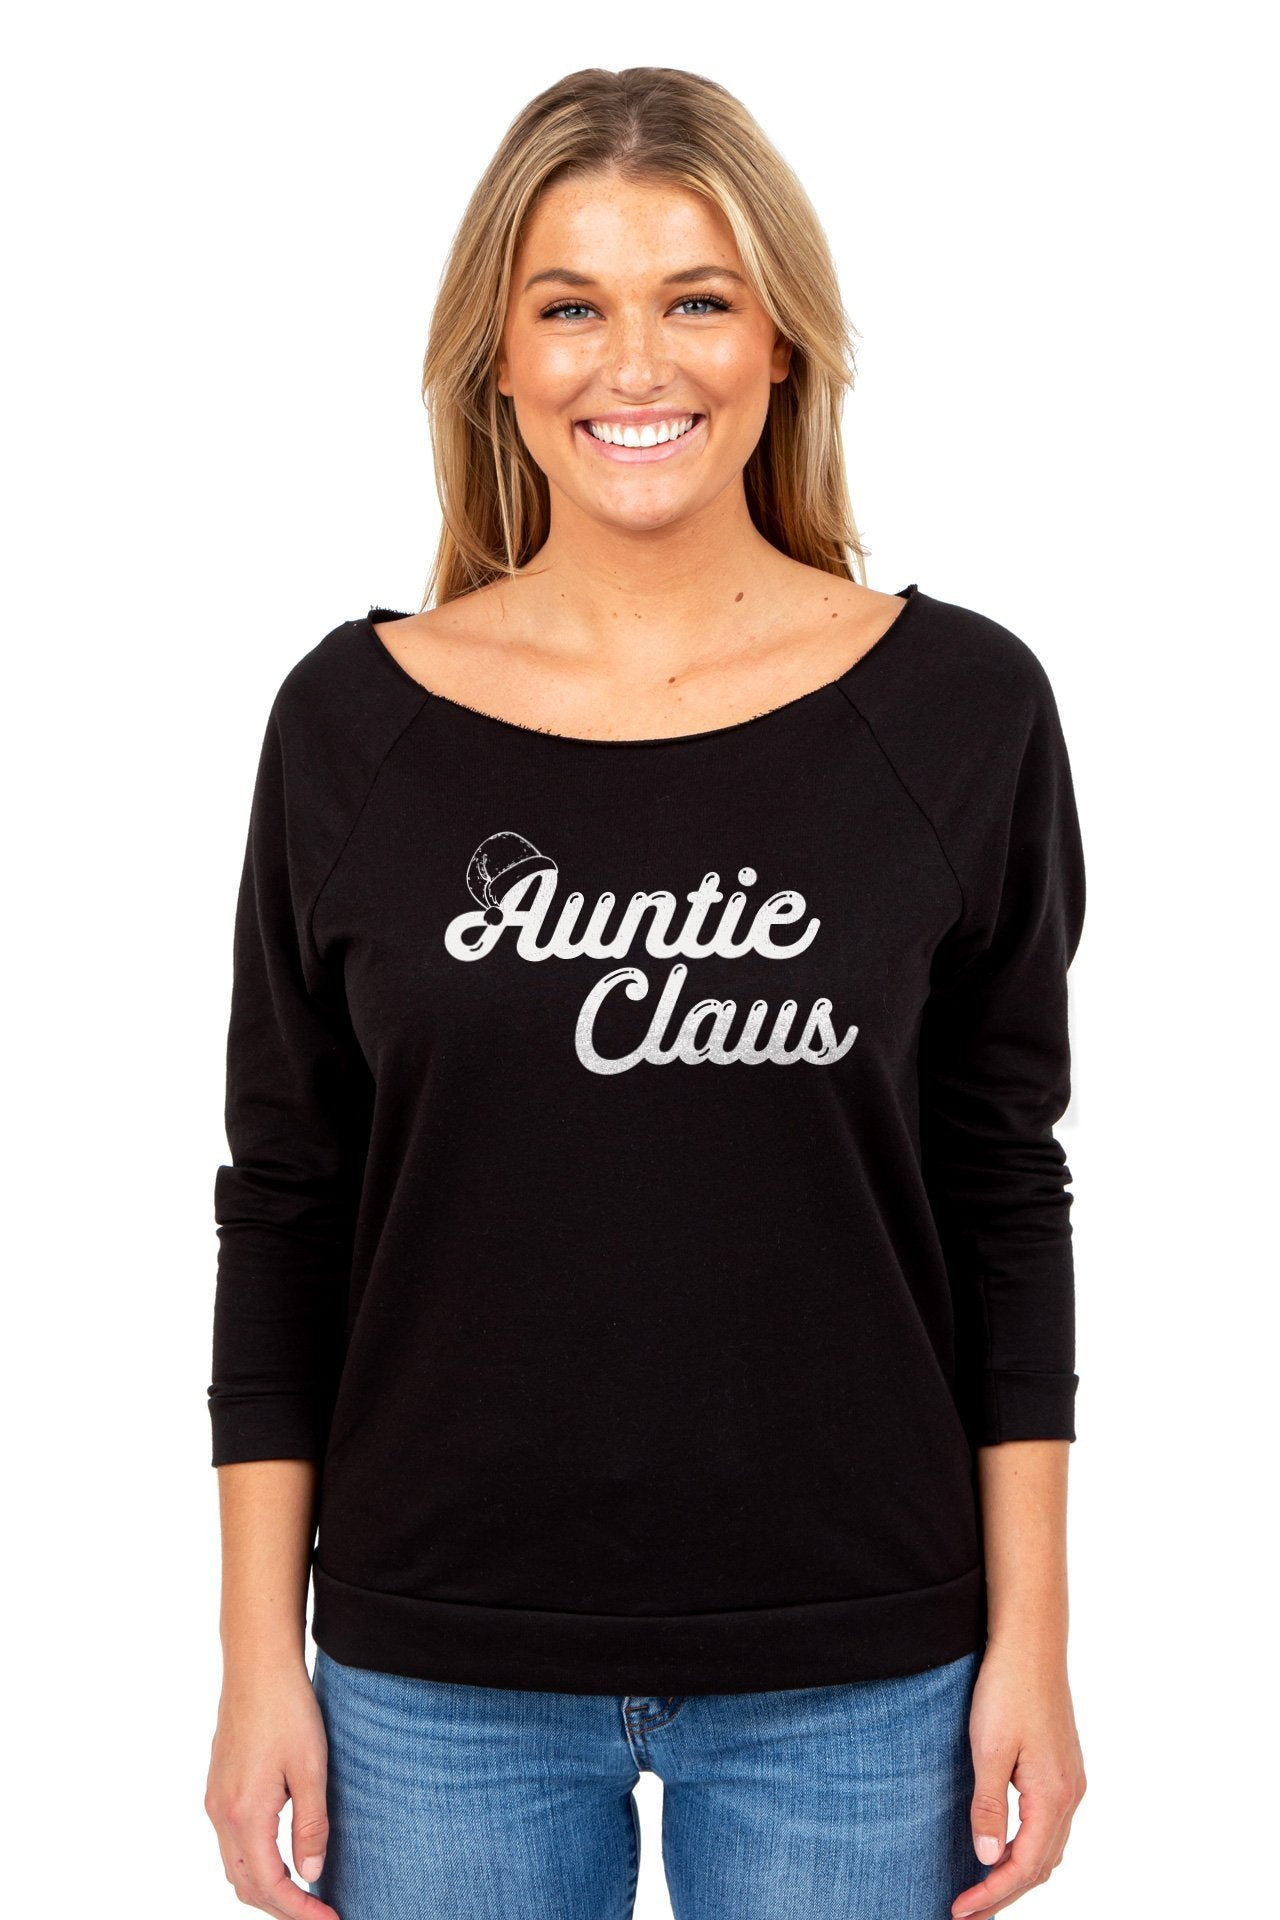 Auntie Claus Women's Graphic Printed Lightweight Slouchy 3/4 Sleeves Sweatshirt Sport Black